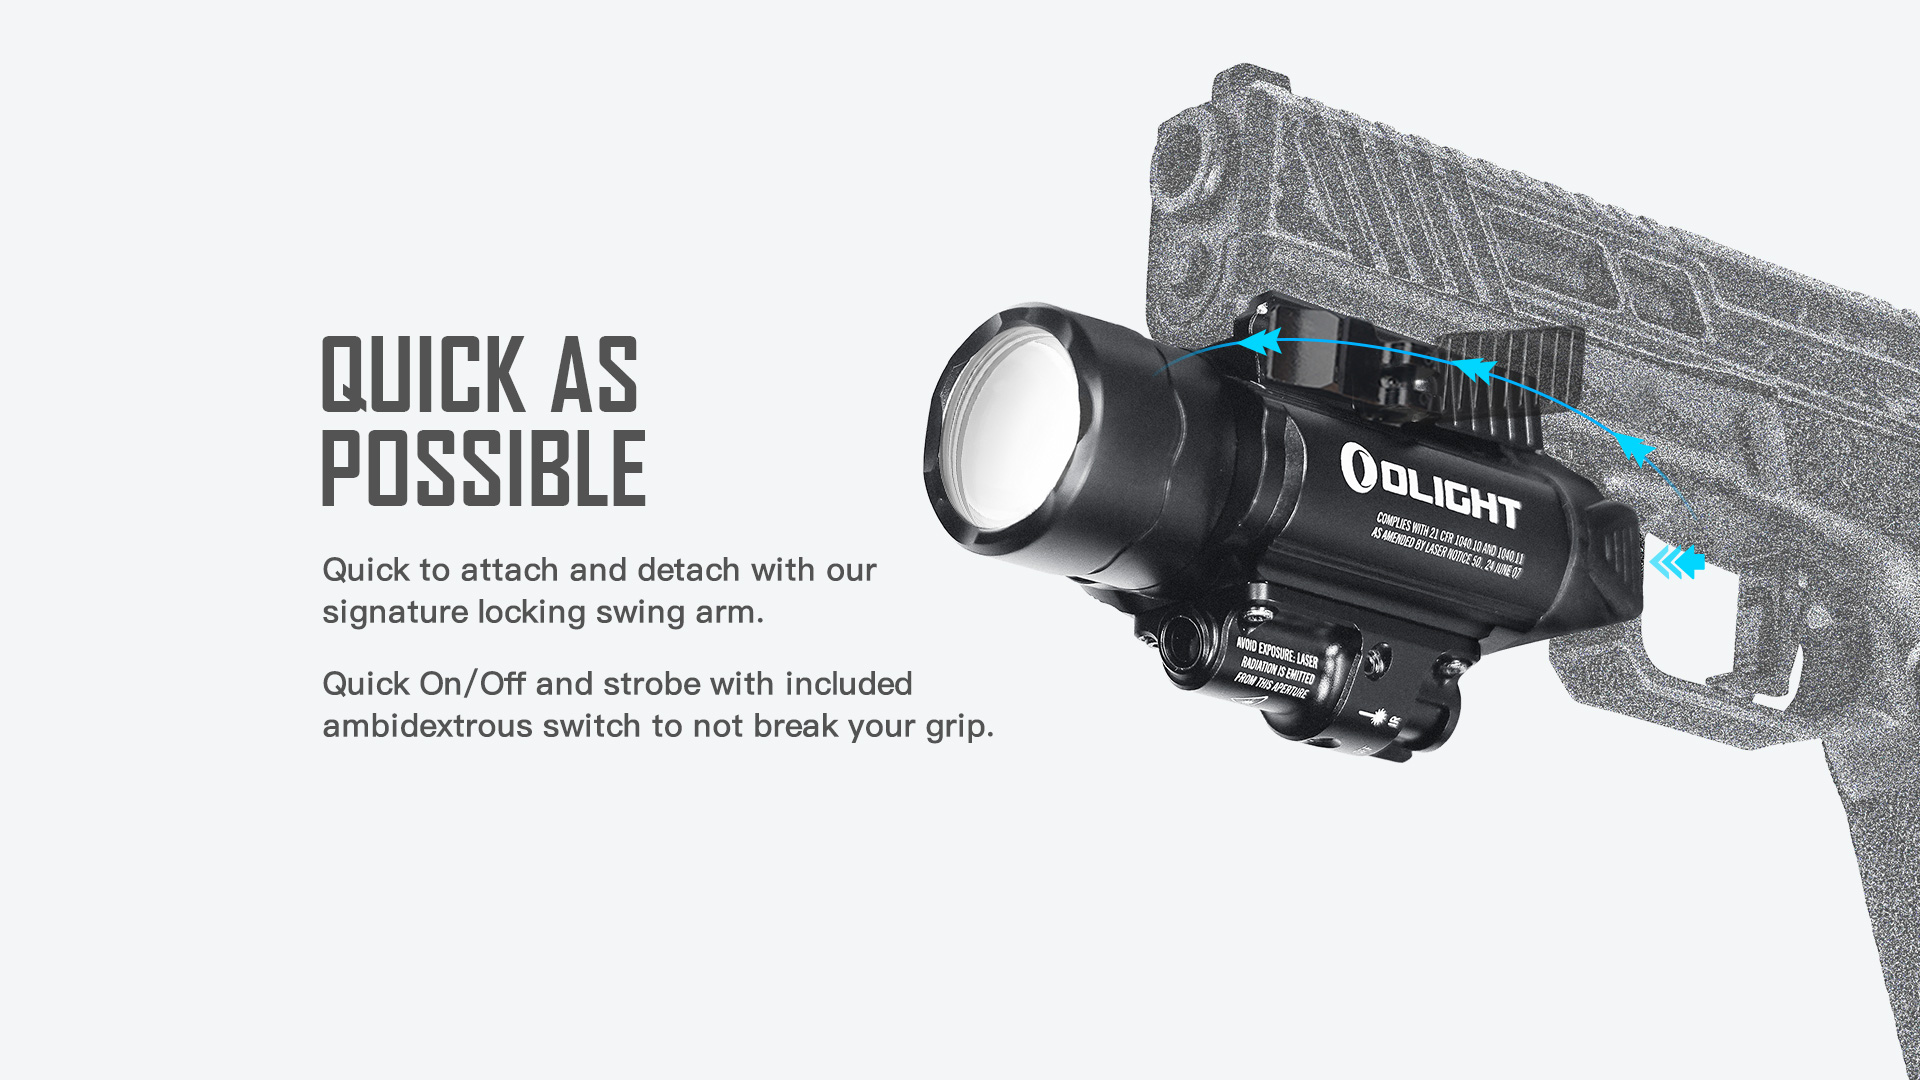 Rechargeable tactical light for easy and quick installation